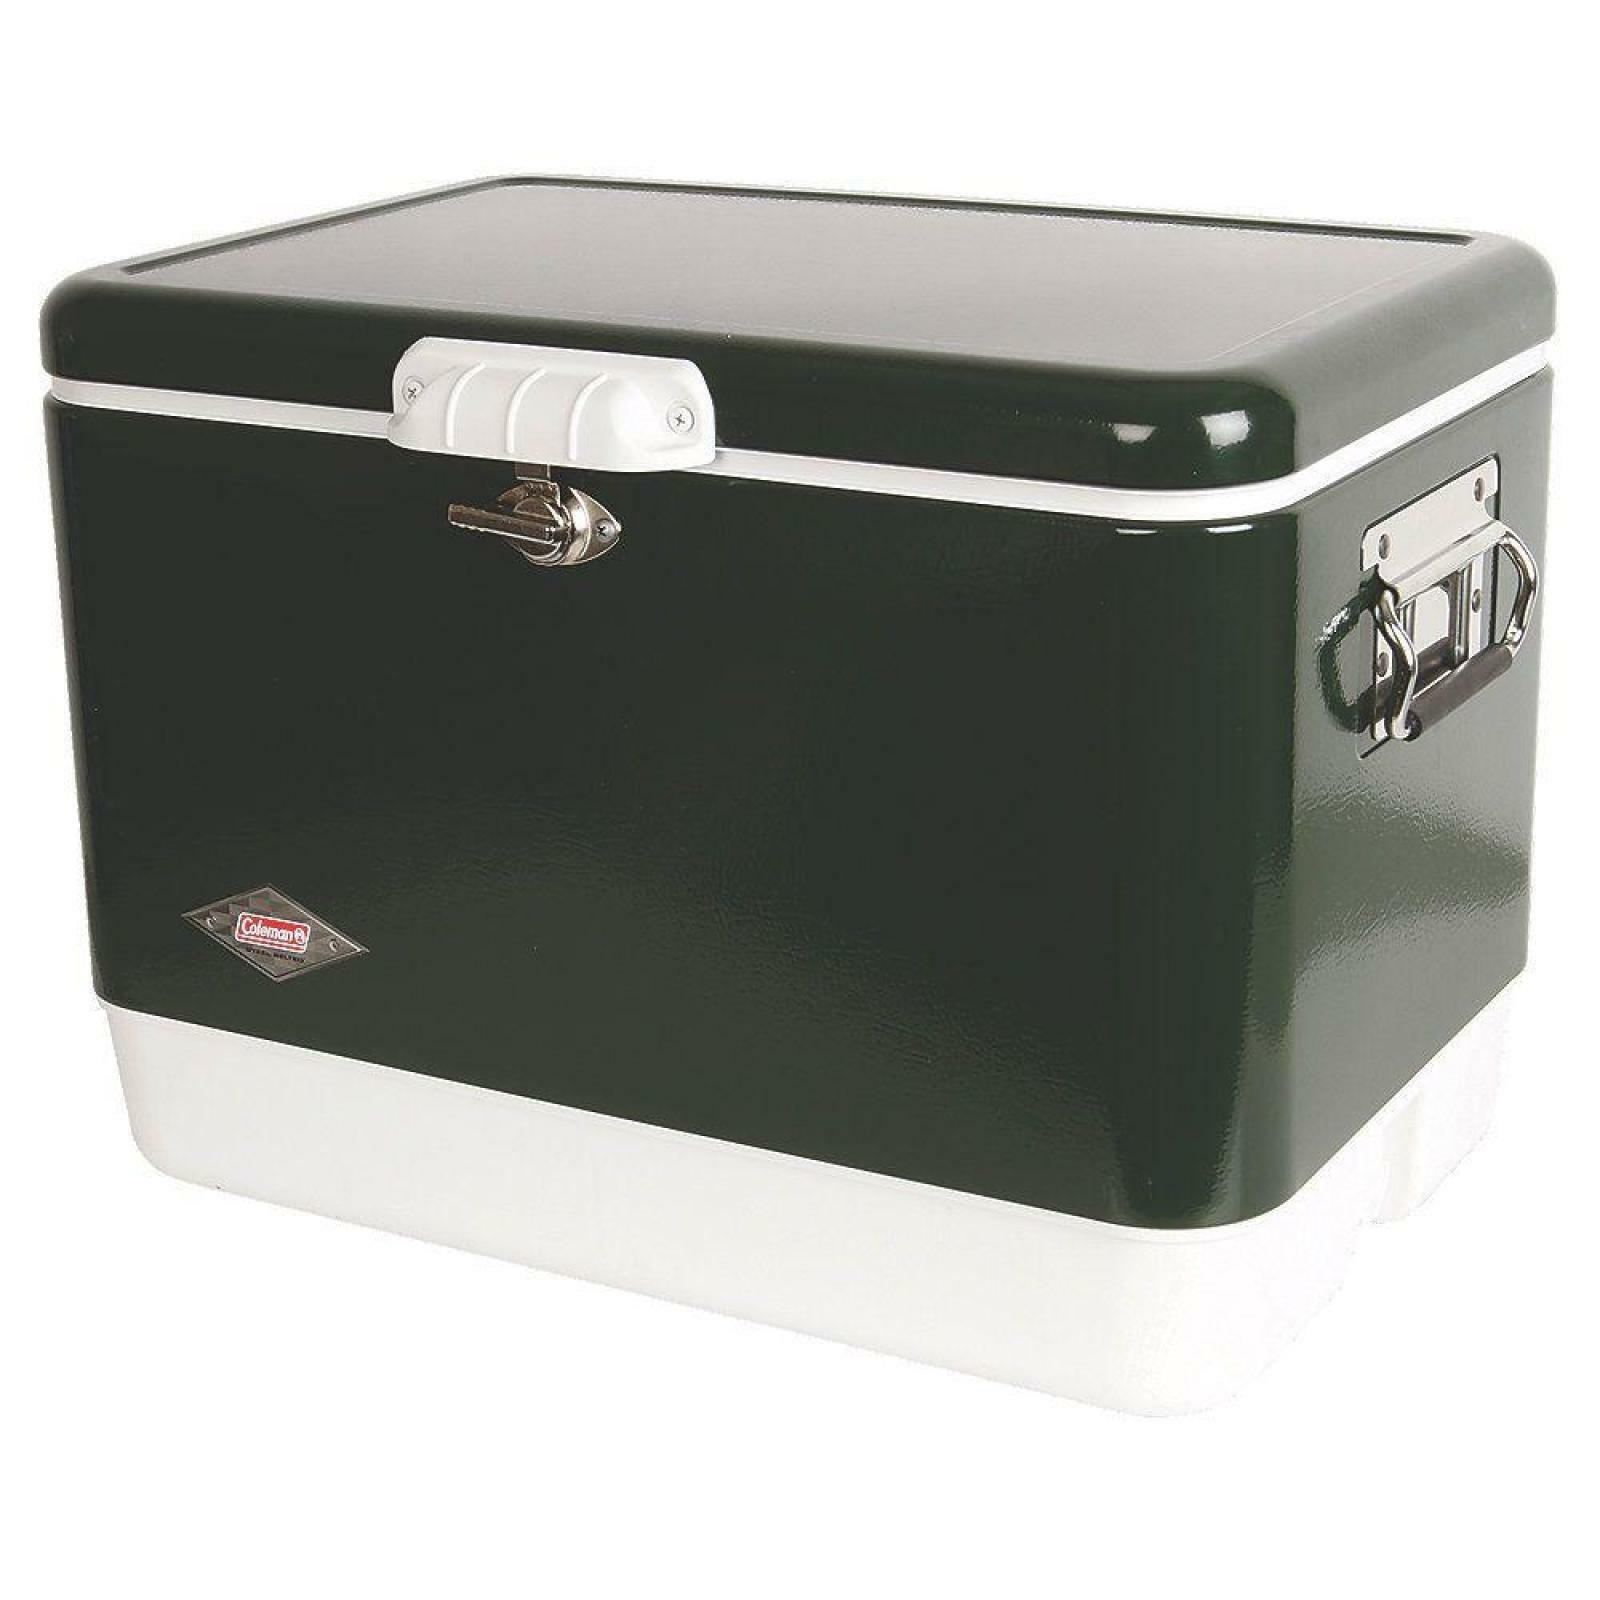 Steel 54 Qt. Chest  Cooler 85 Cans Thermozone Outdoor Camping Storage Rust proof  great offers